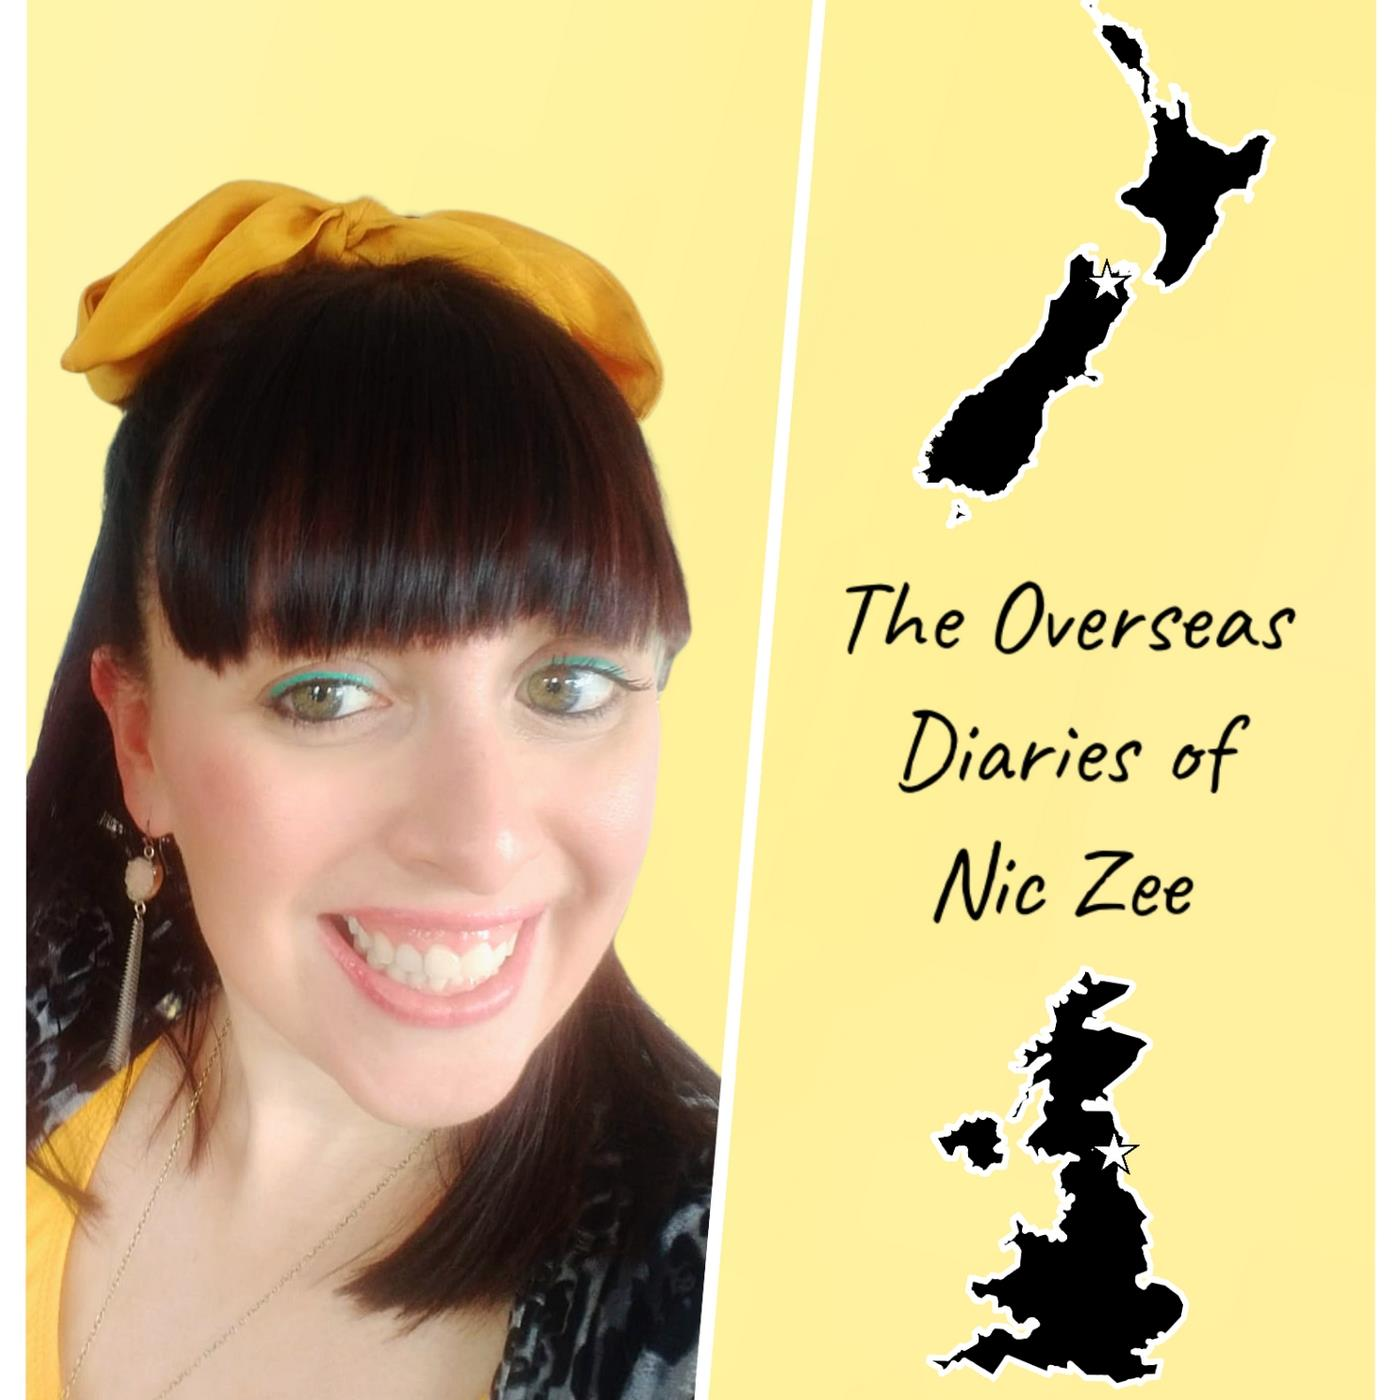 The Overseas Diaries of Nic Zee - Jan 27 2021